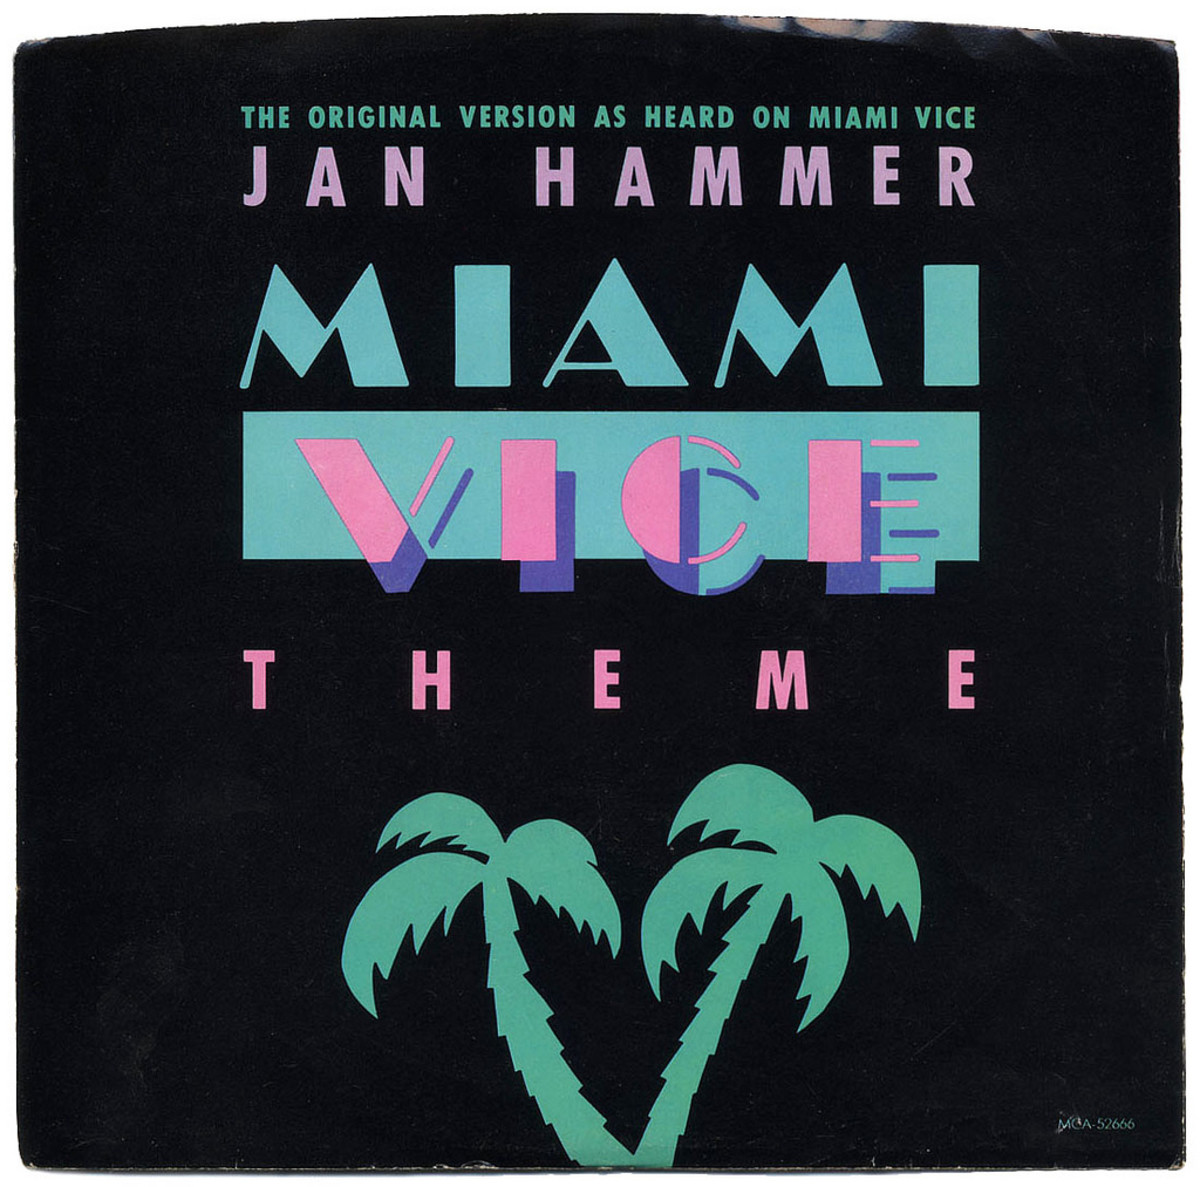 Miami Vice Theme by Jan Hammer